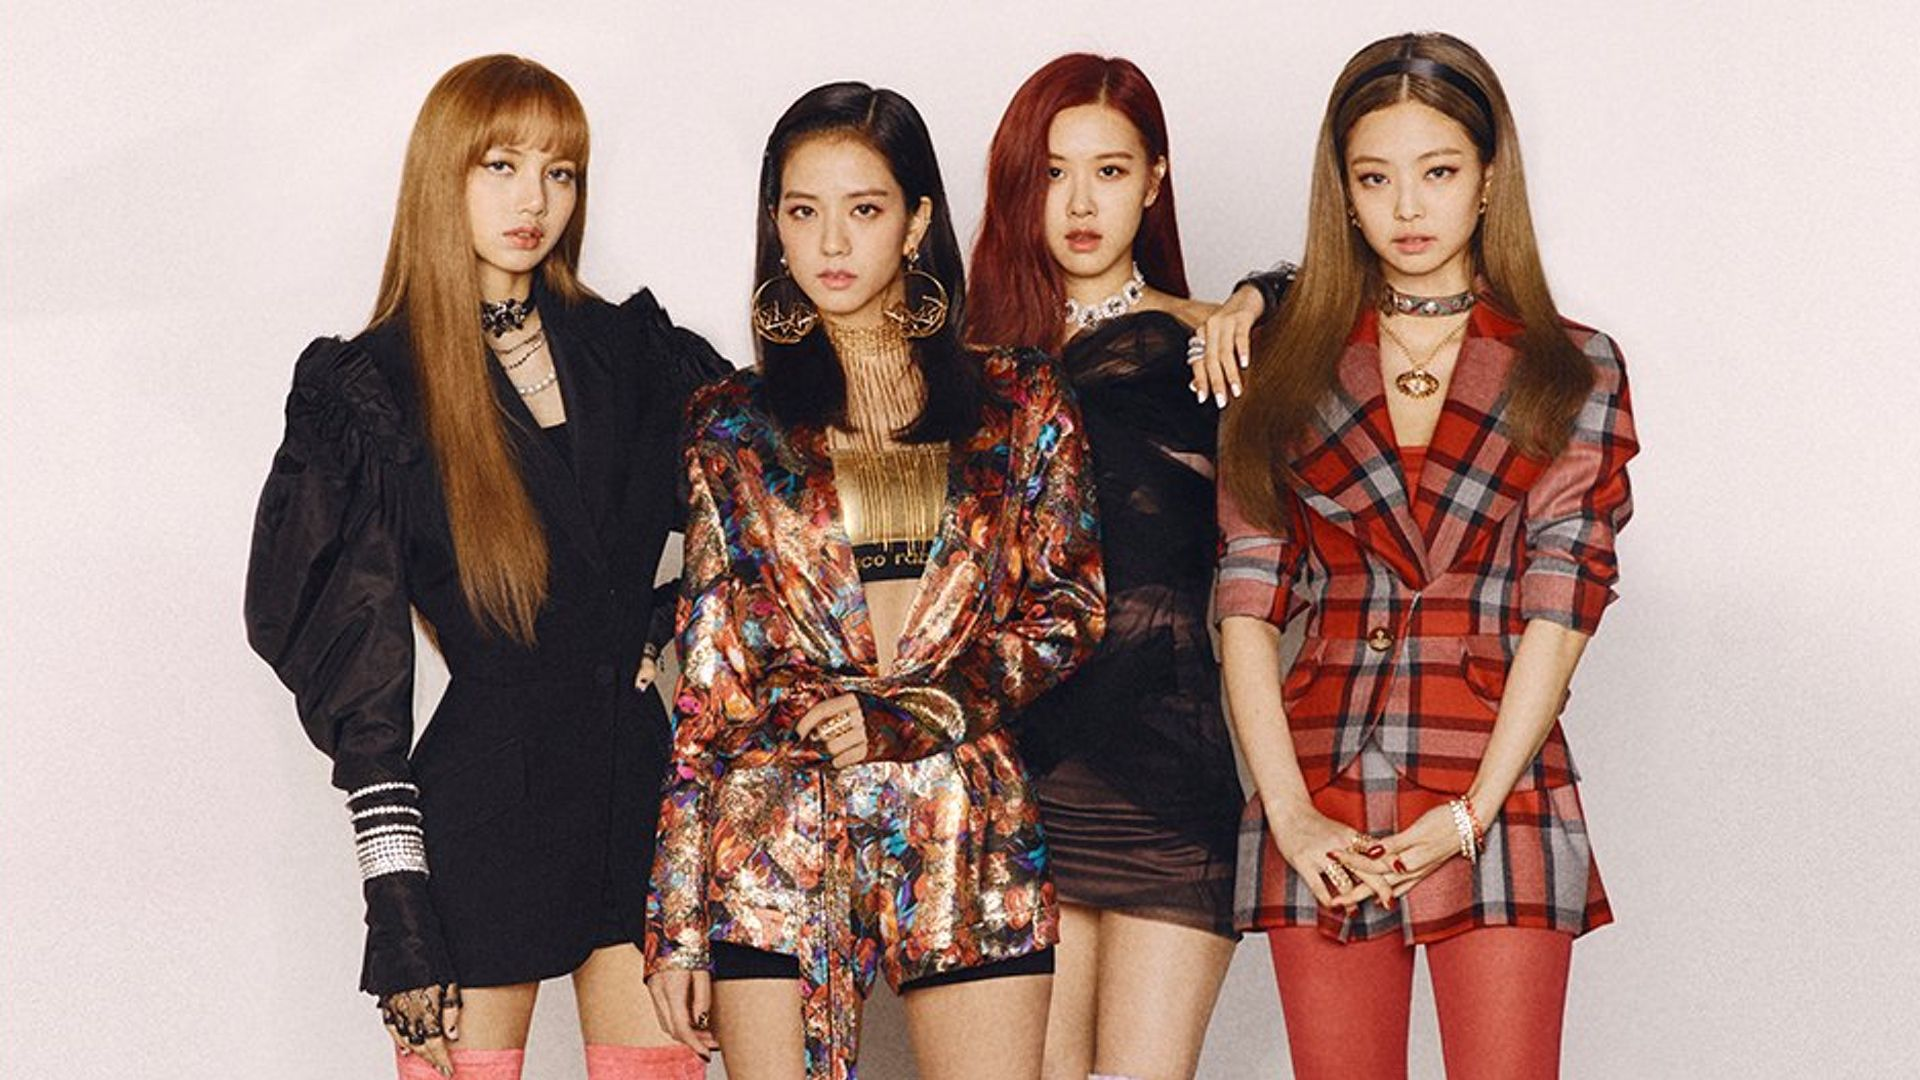 Blackpink Laptop Wallpapers Top Free Blackpink Laptop